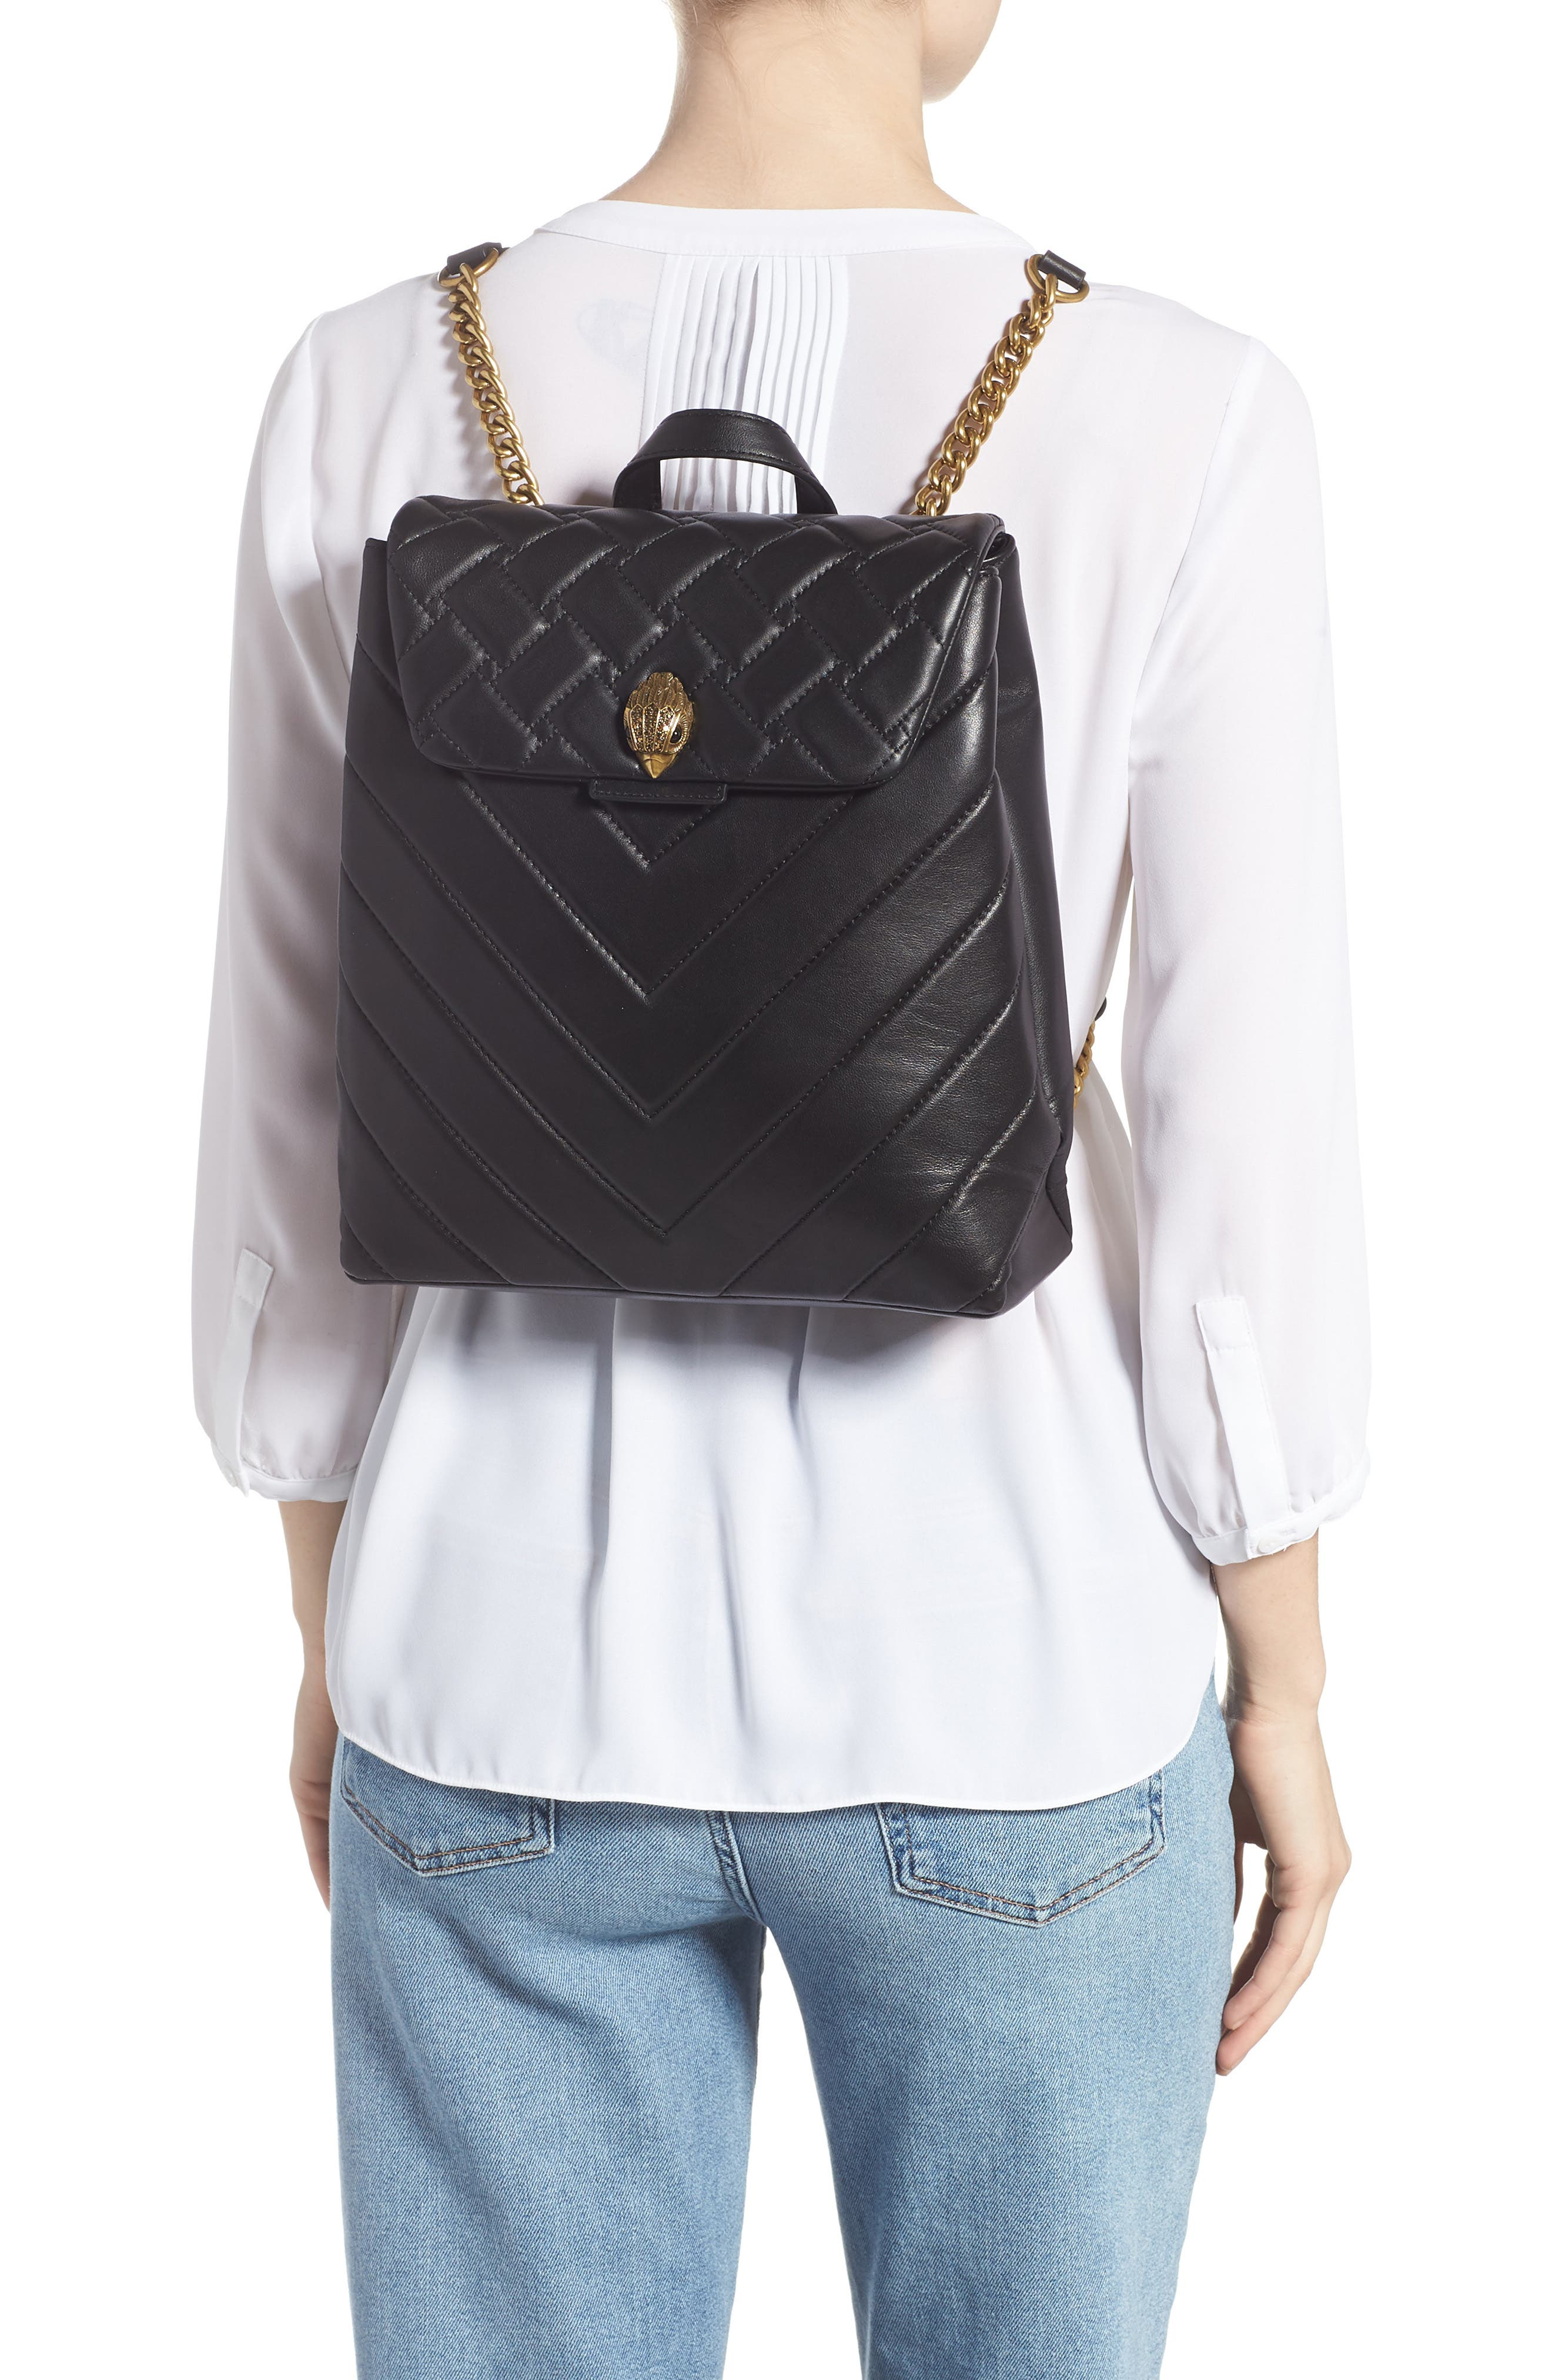 Kensington Quilted Leather Backpack - Black